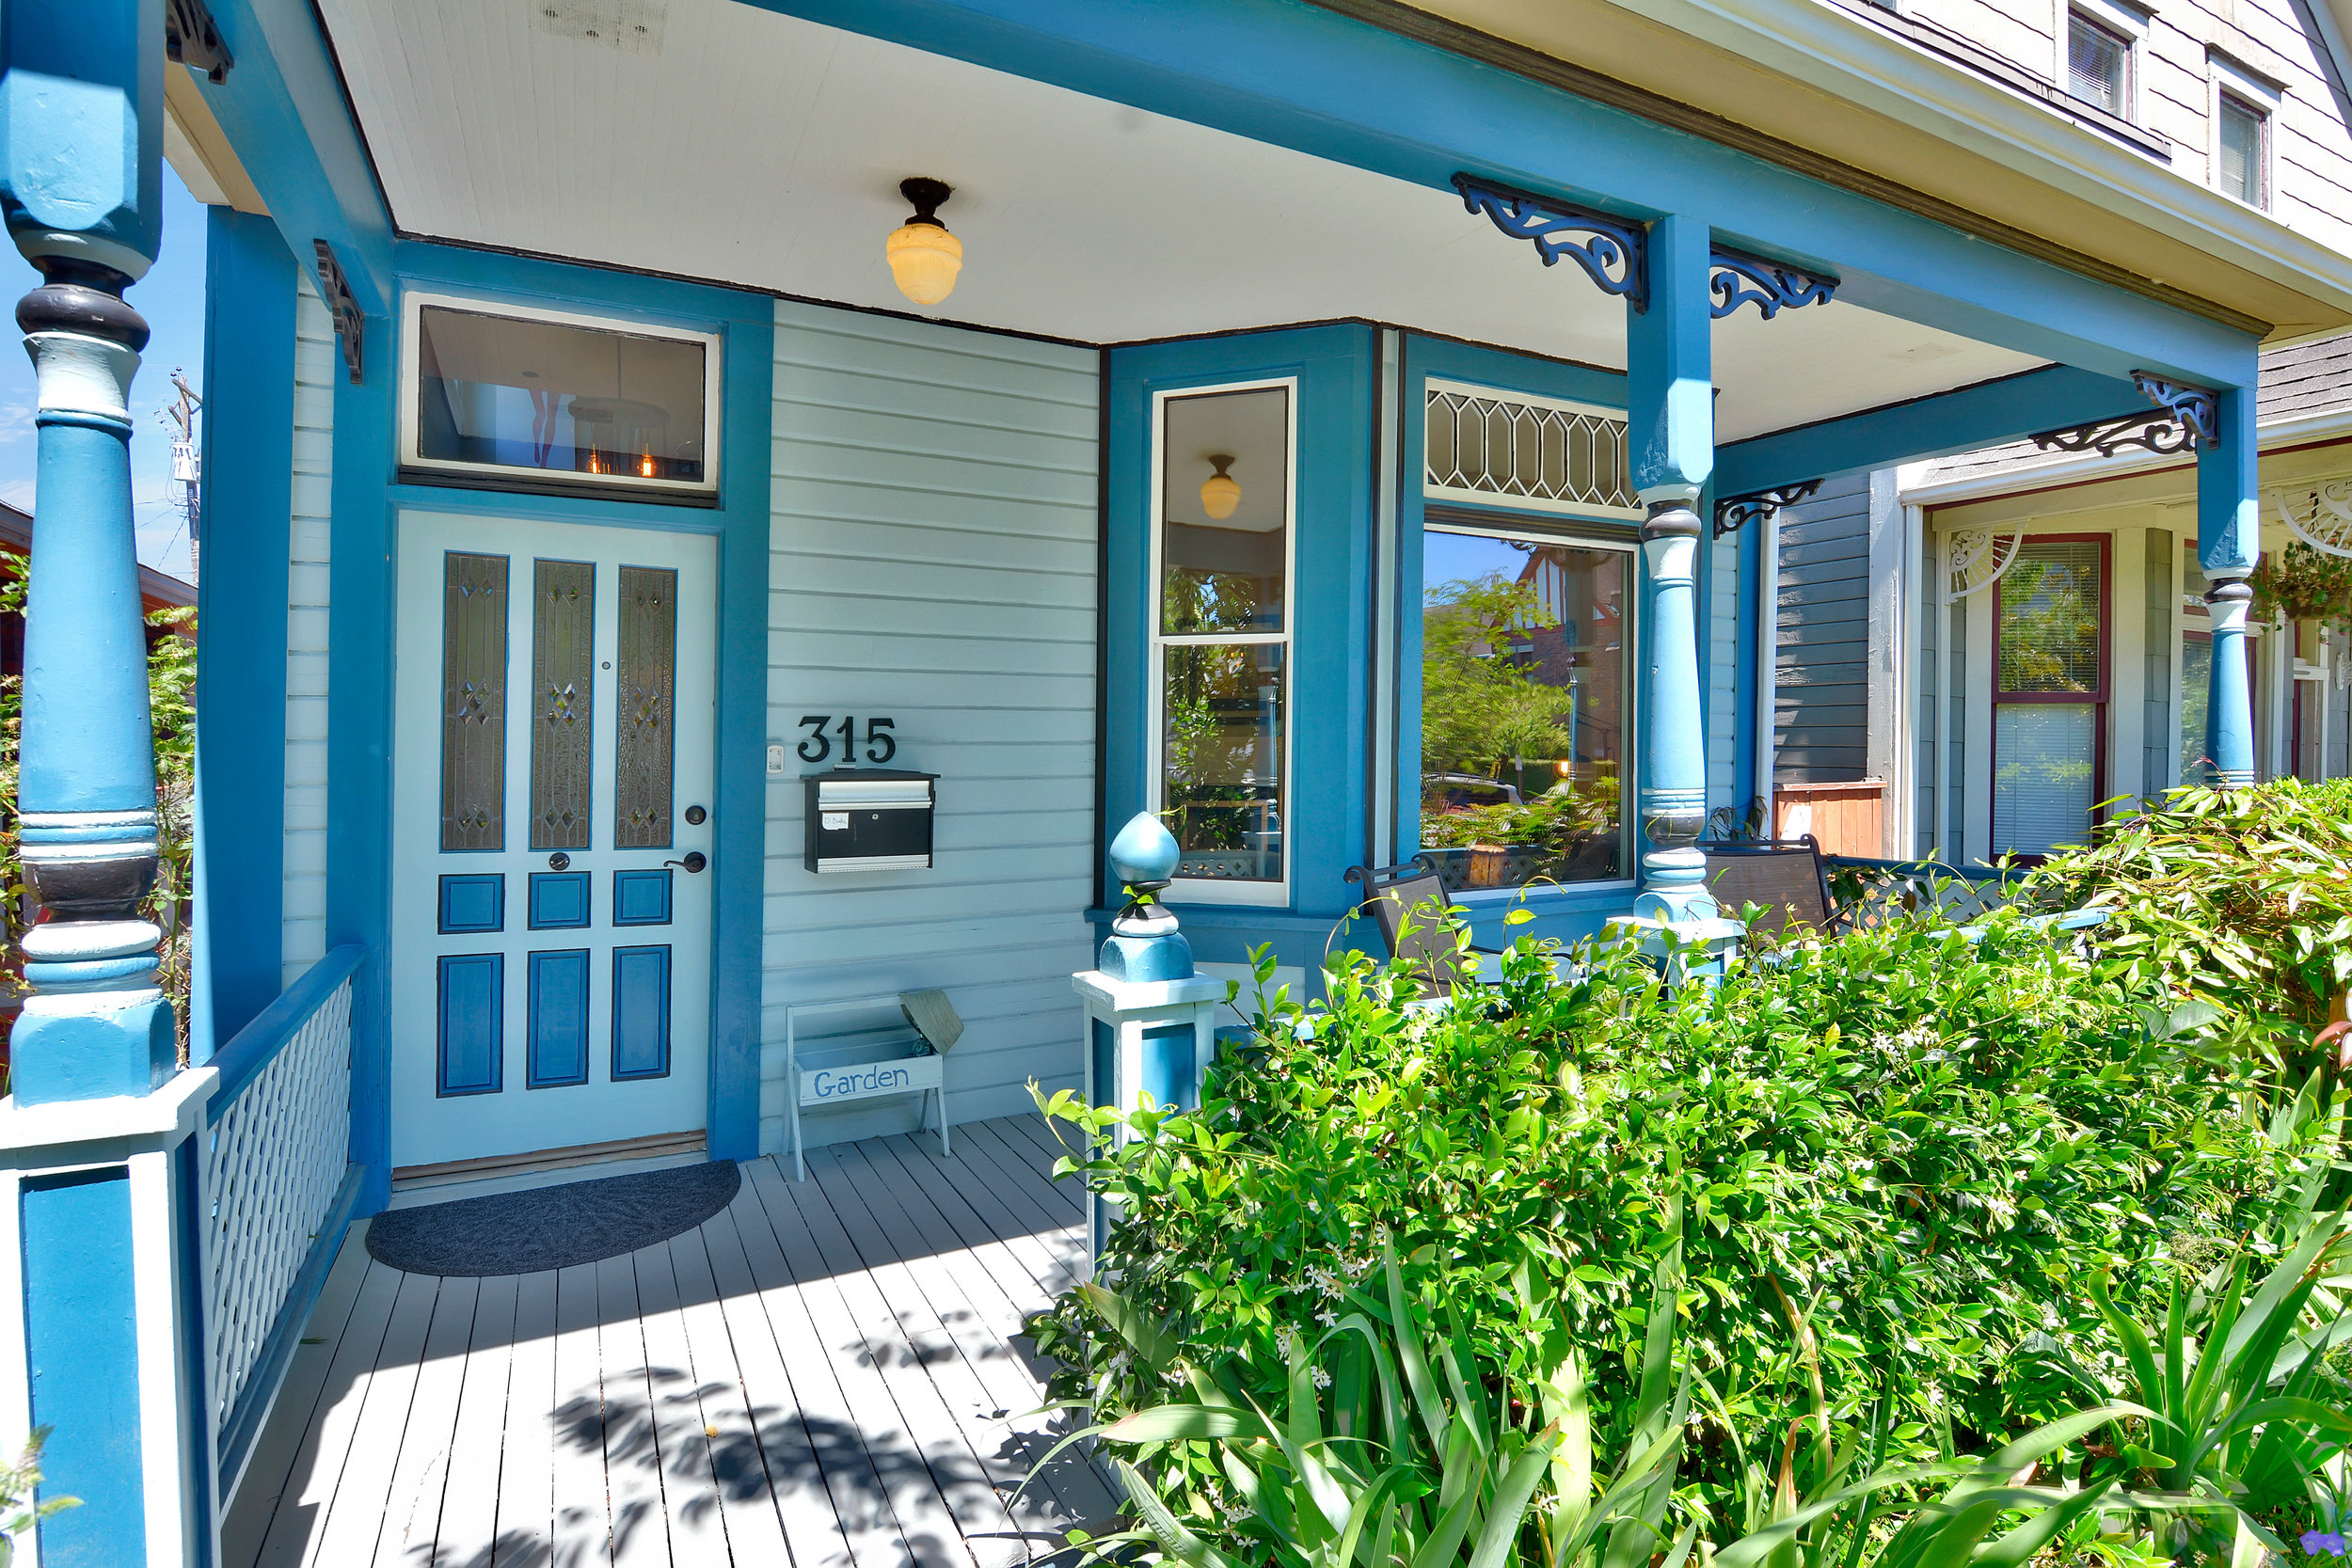 Sit and sip some local coffee while enjoying the neighborhood on this beautiful covered front porch!